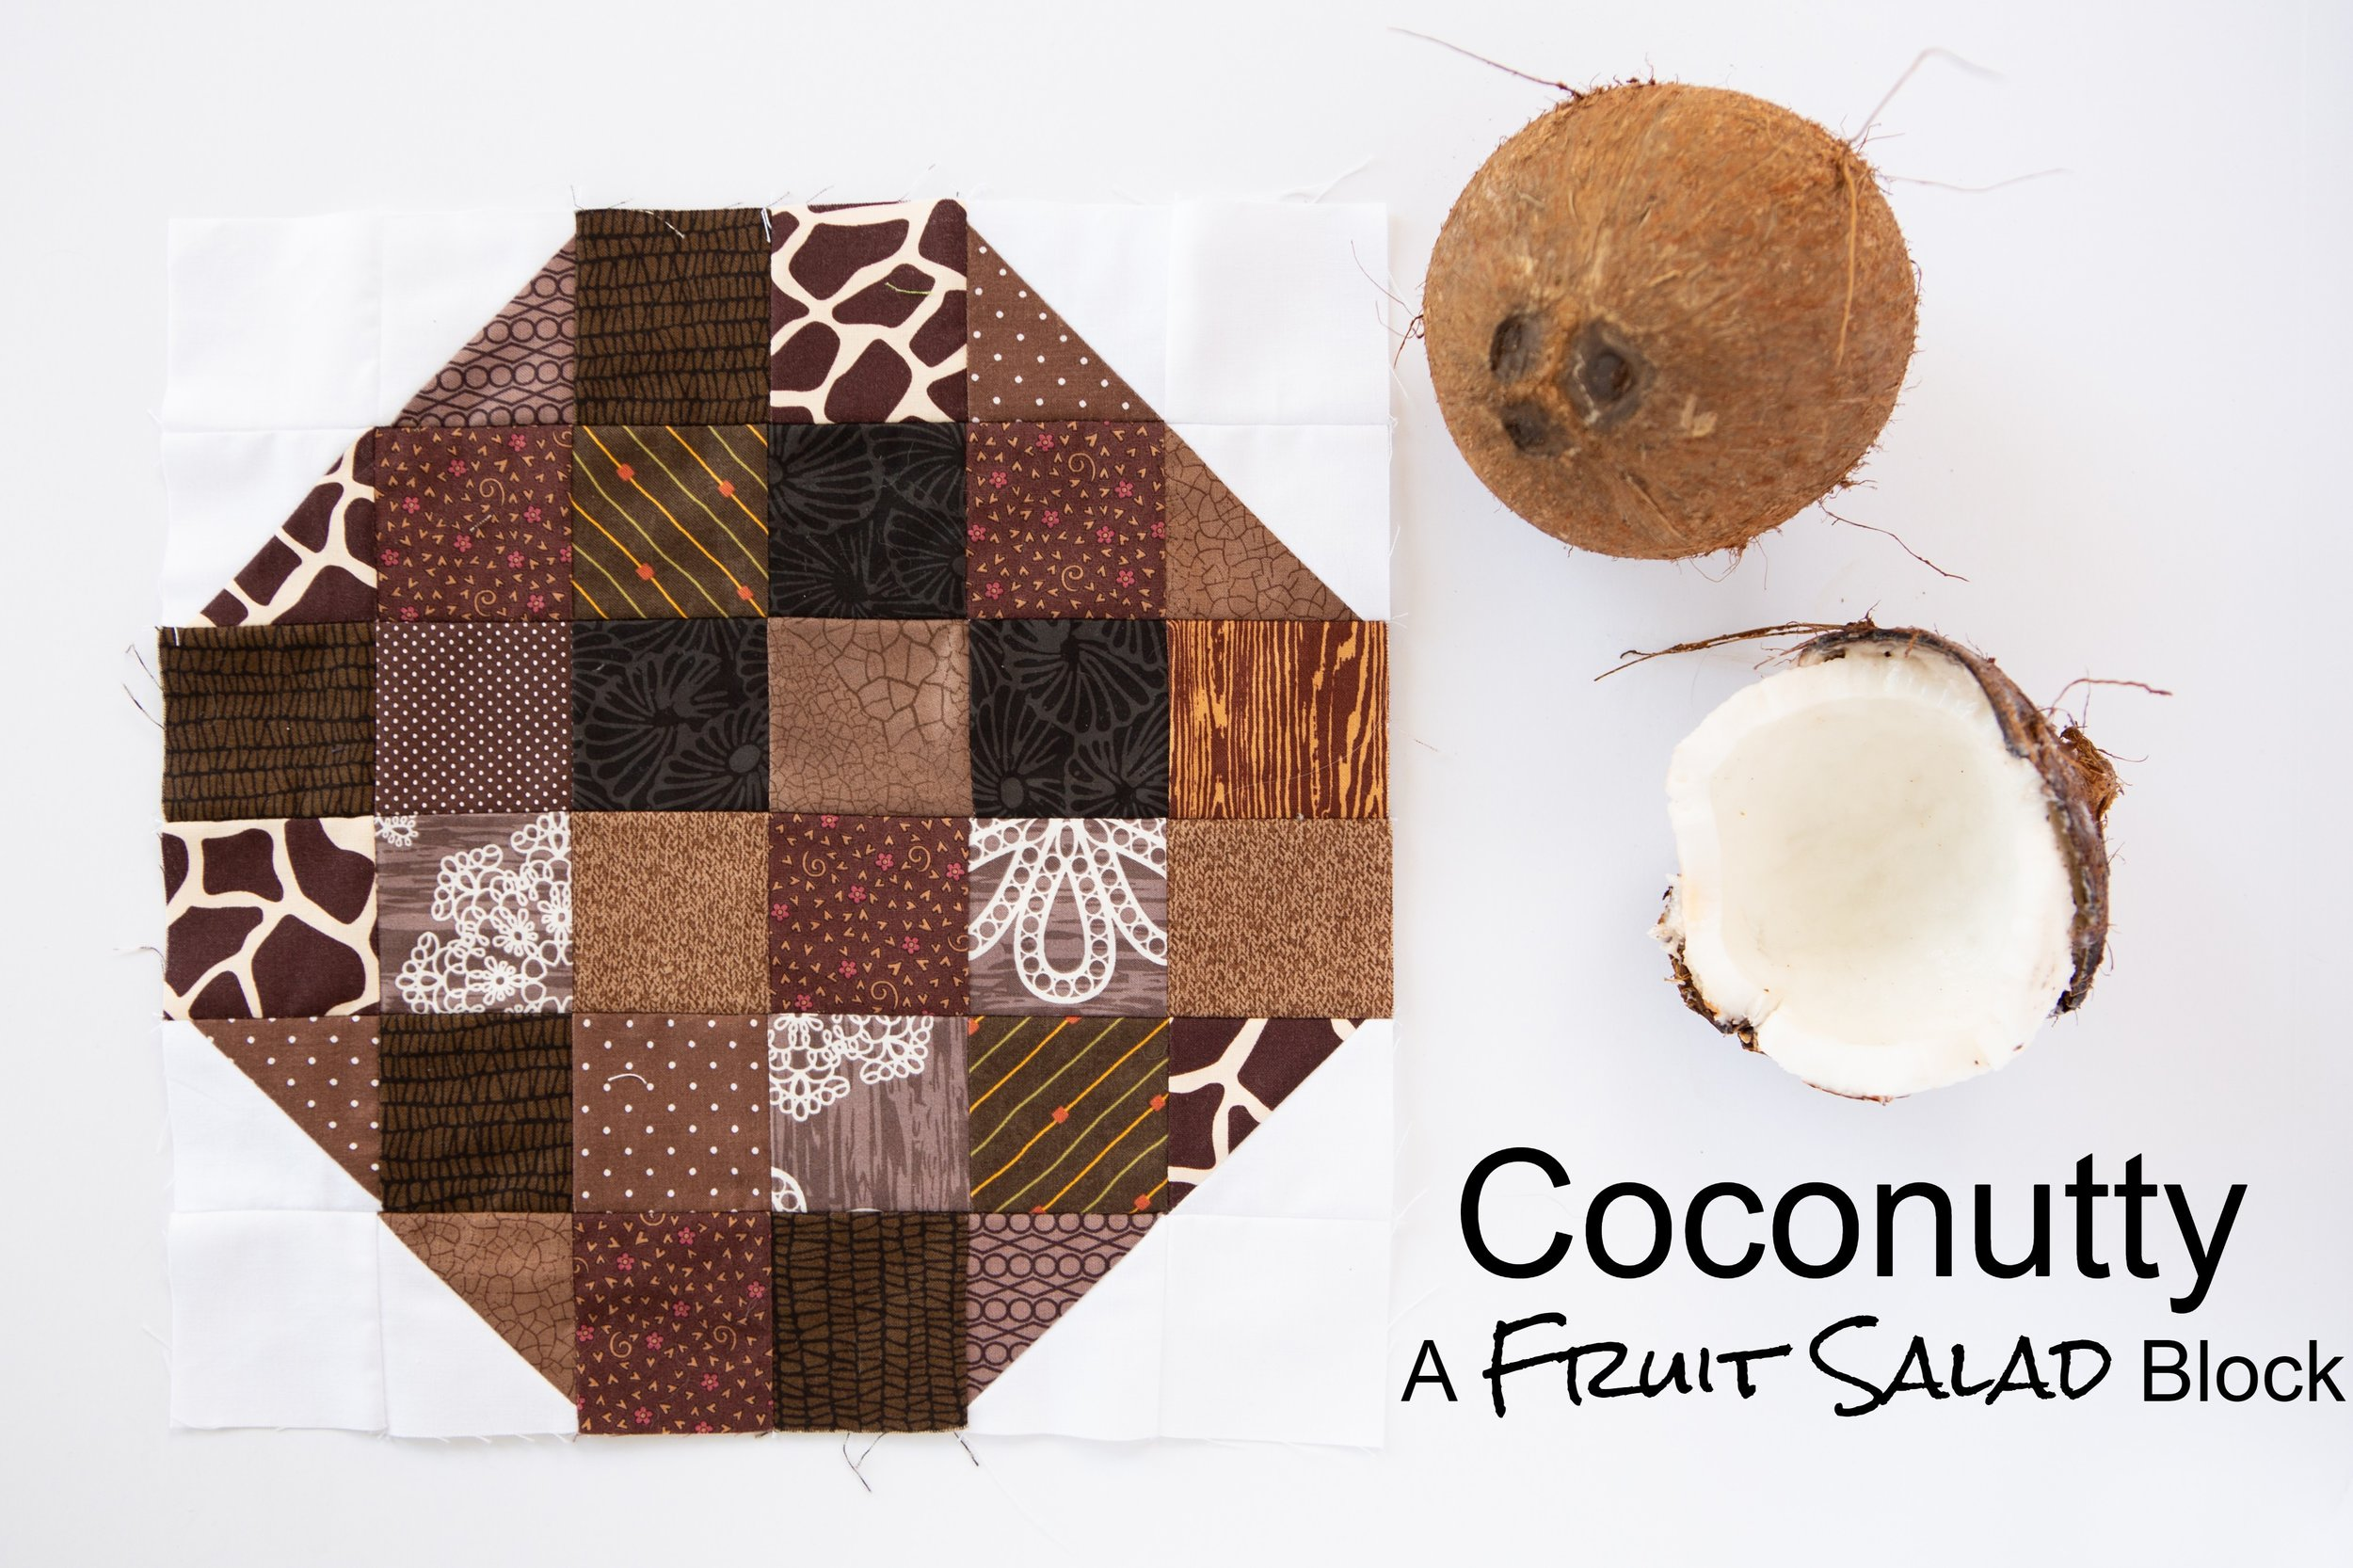 Coconutty - A Fruit Salad Block